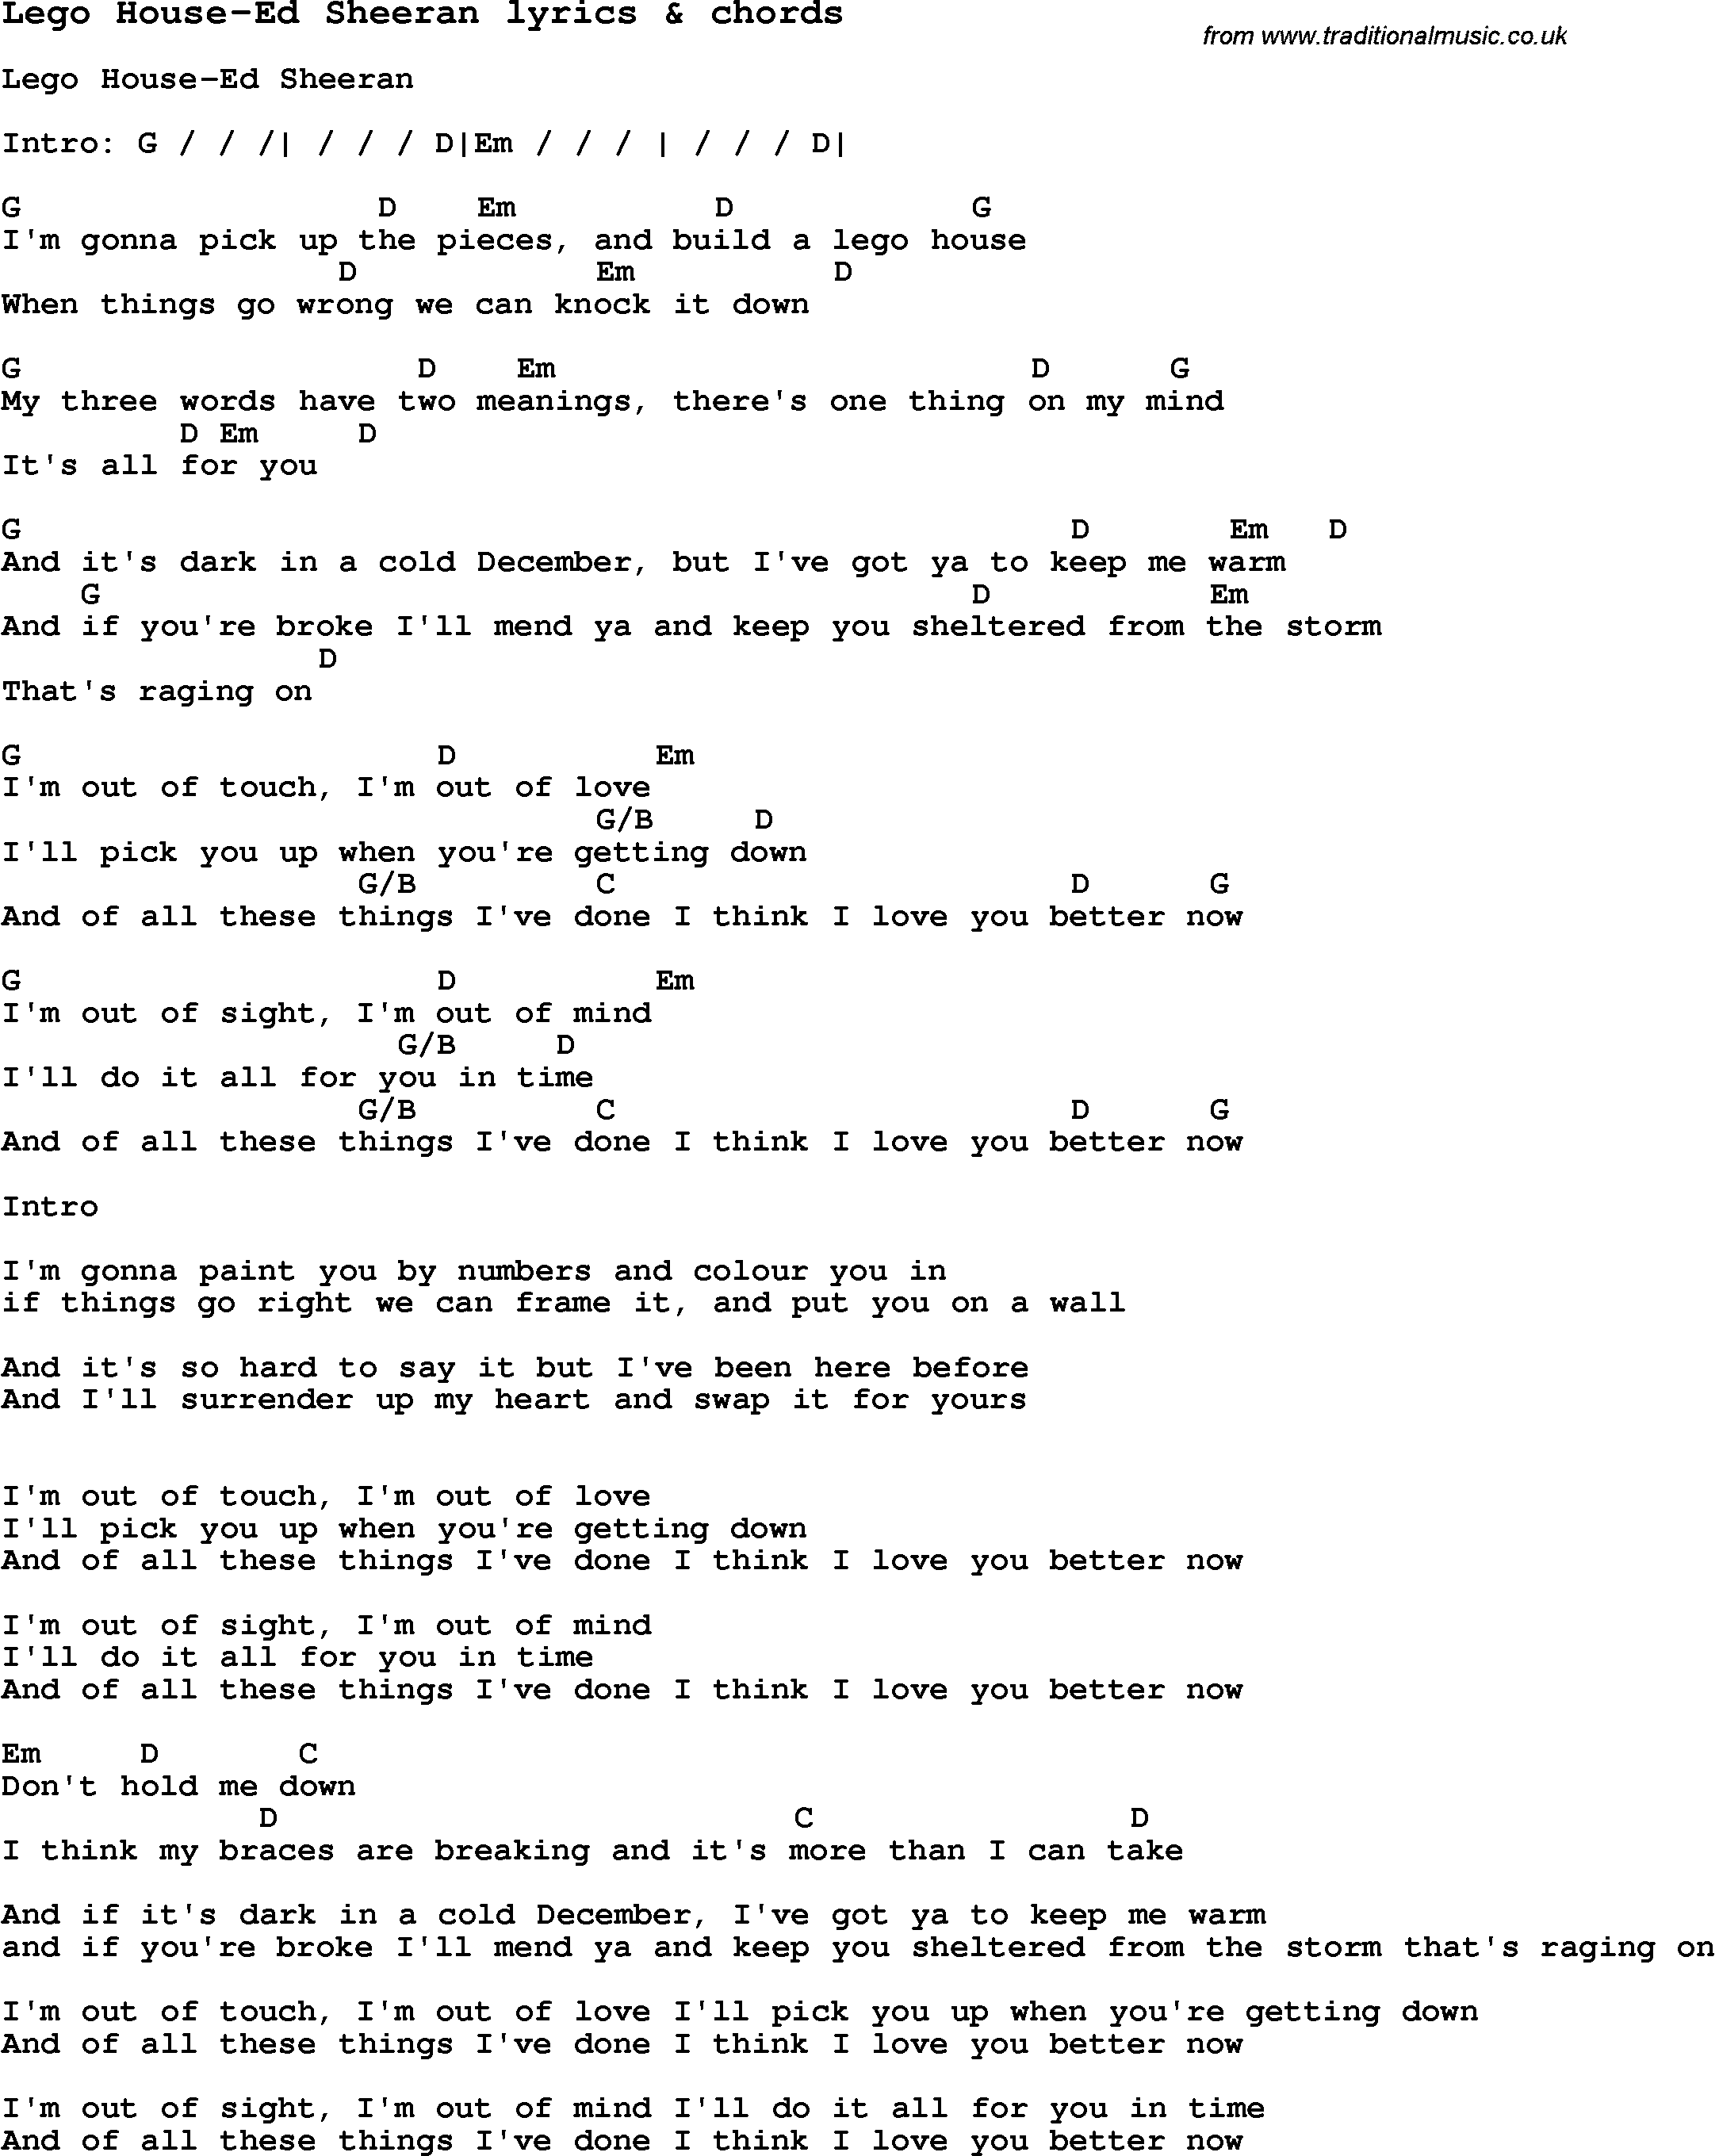 Love Song Lyrics For Lego House Ed Sheeran With Chords For Ukulele